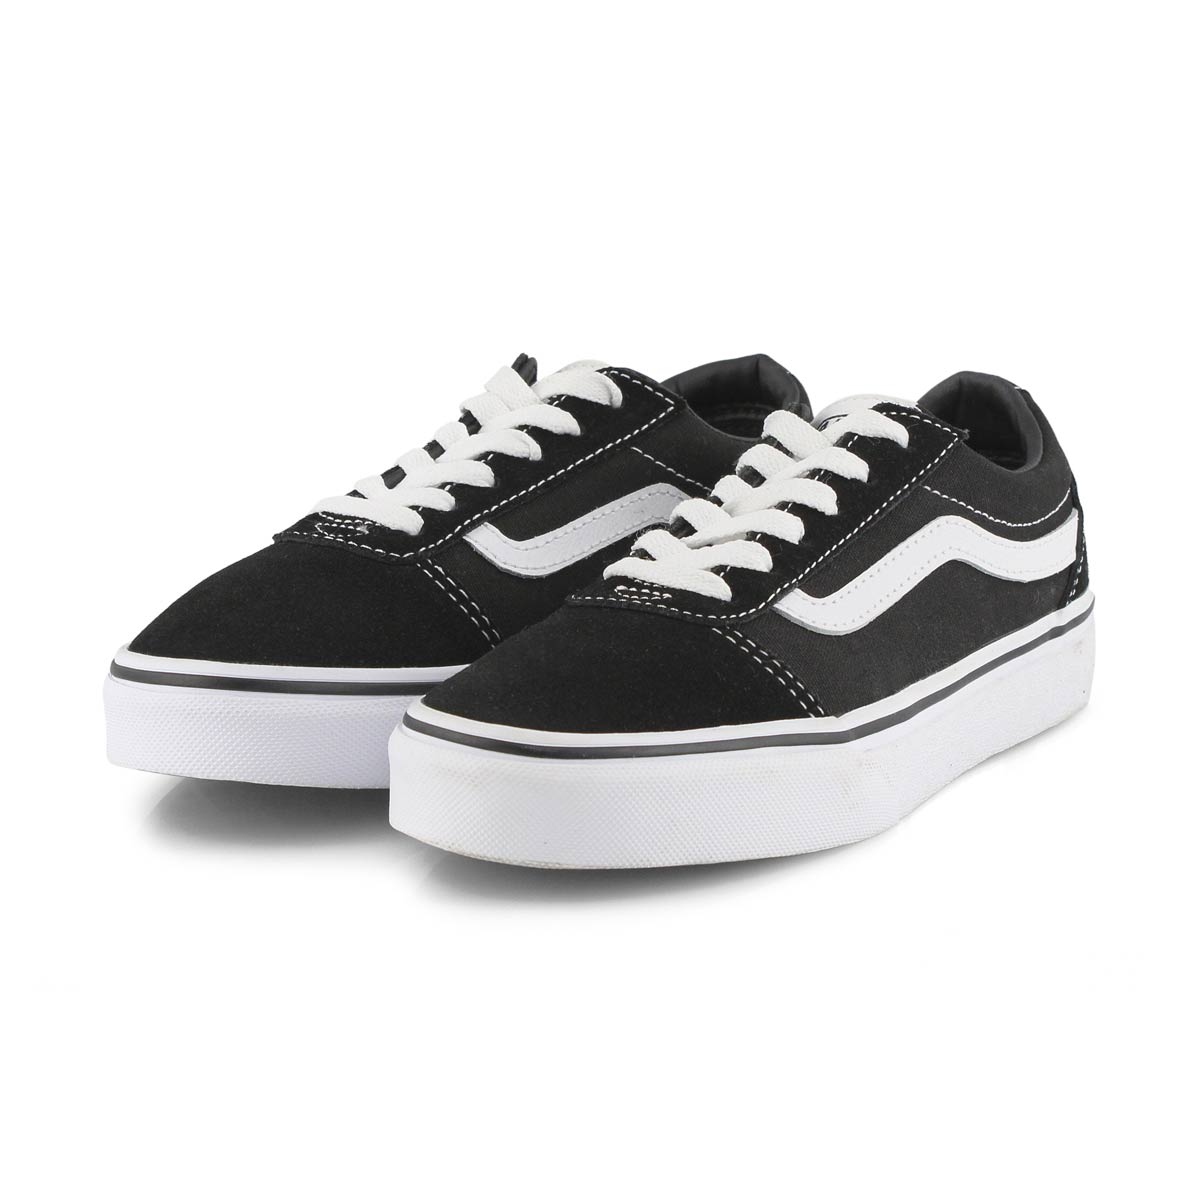 Bys Ward blk/wht lace up sneaker